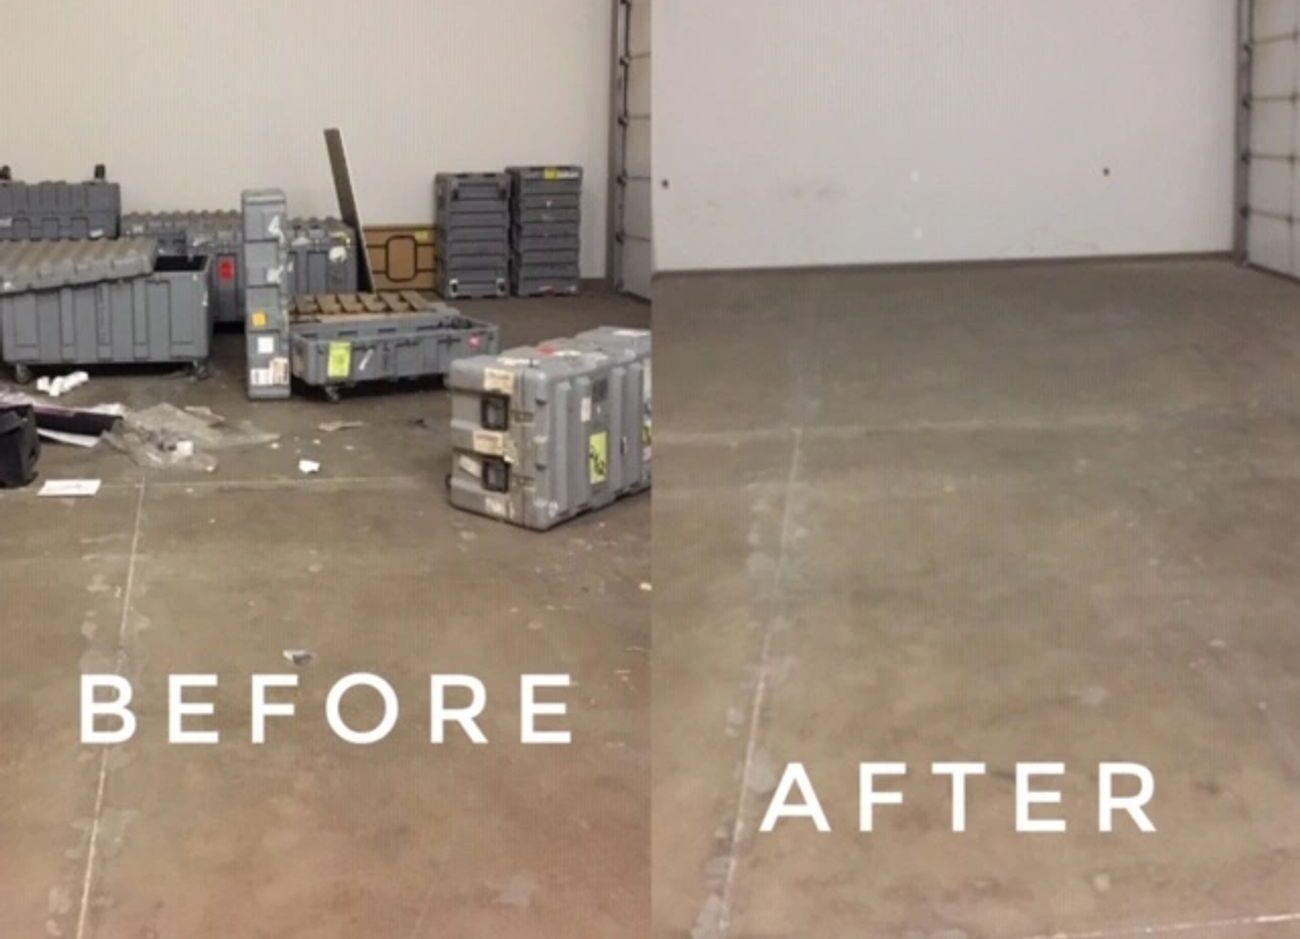 Garage Cleanout by Code 3 Junk Removal - Before and After